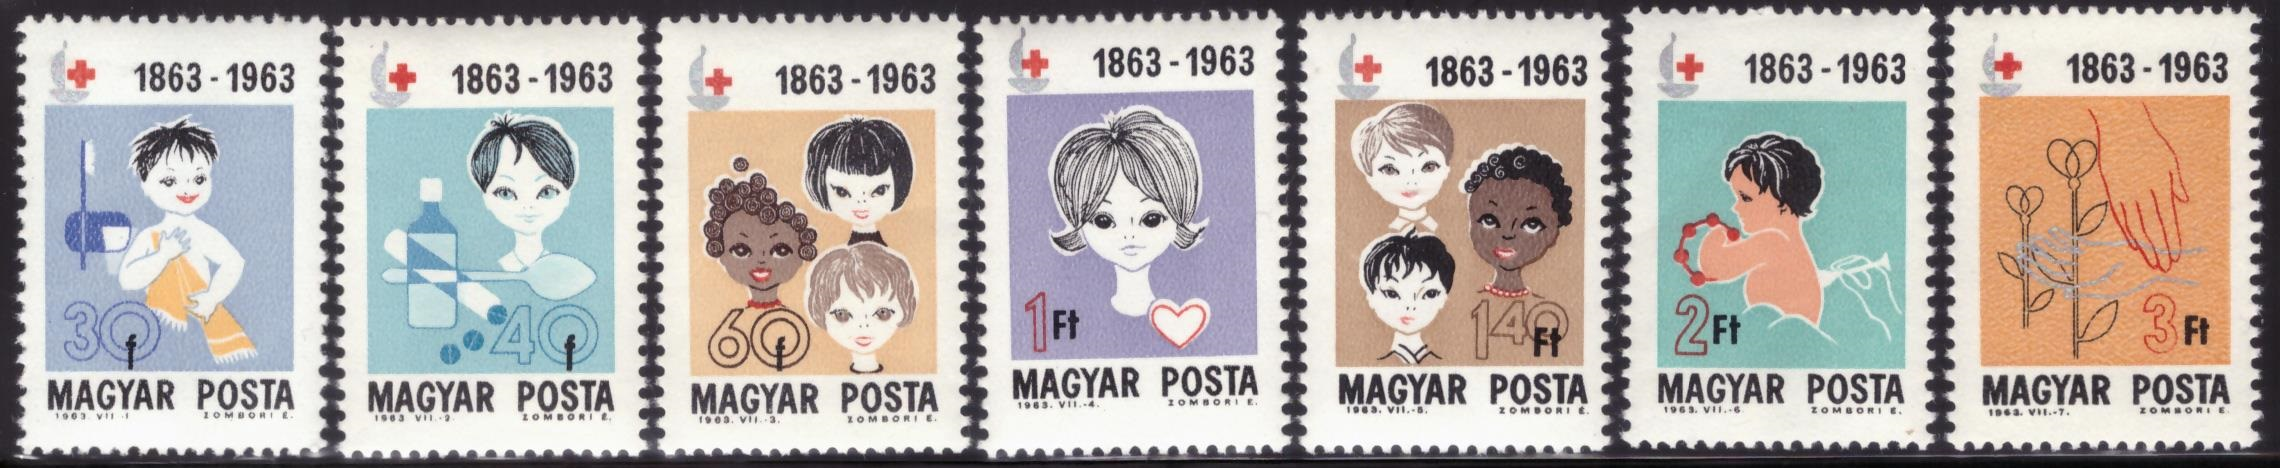 timbres_croix_rouge_hongrie_1963.jpg